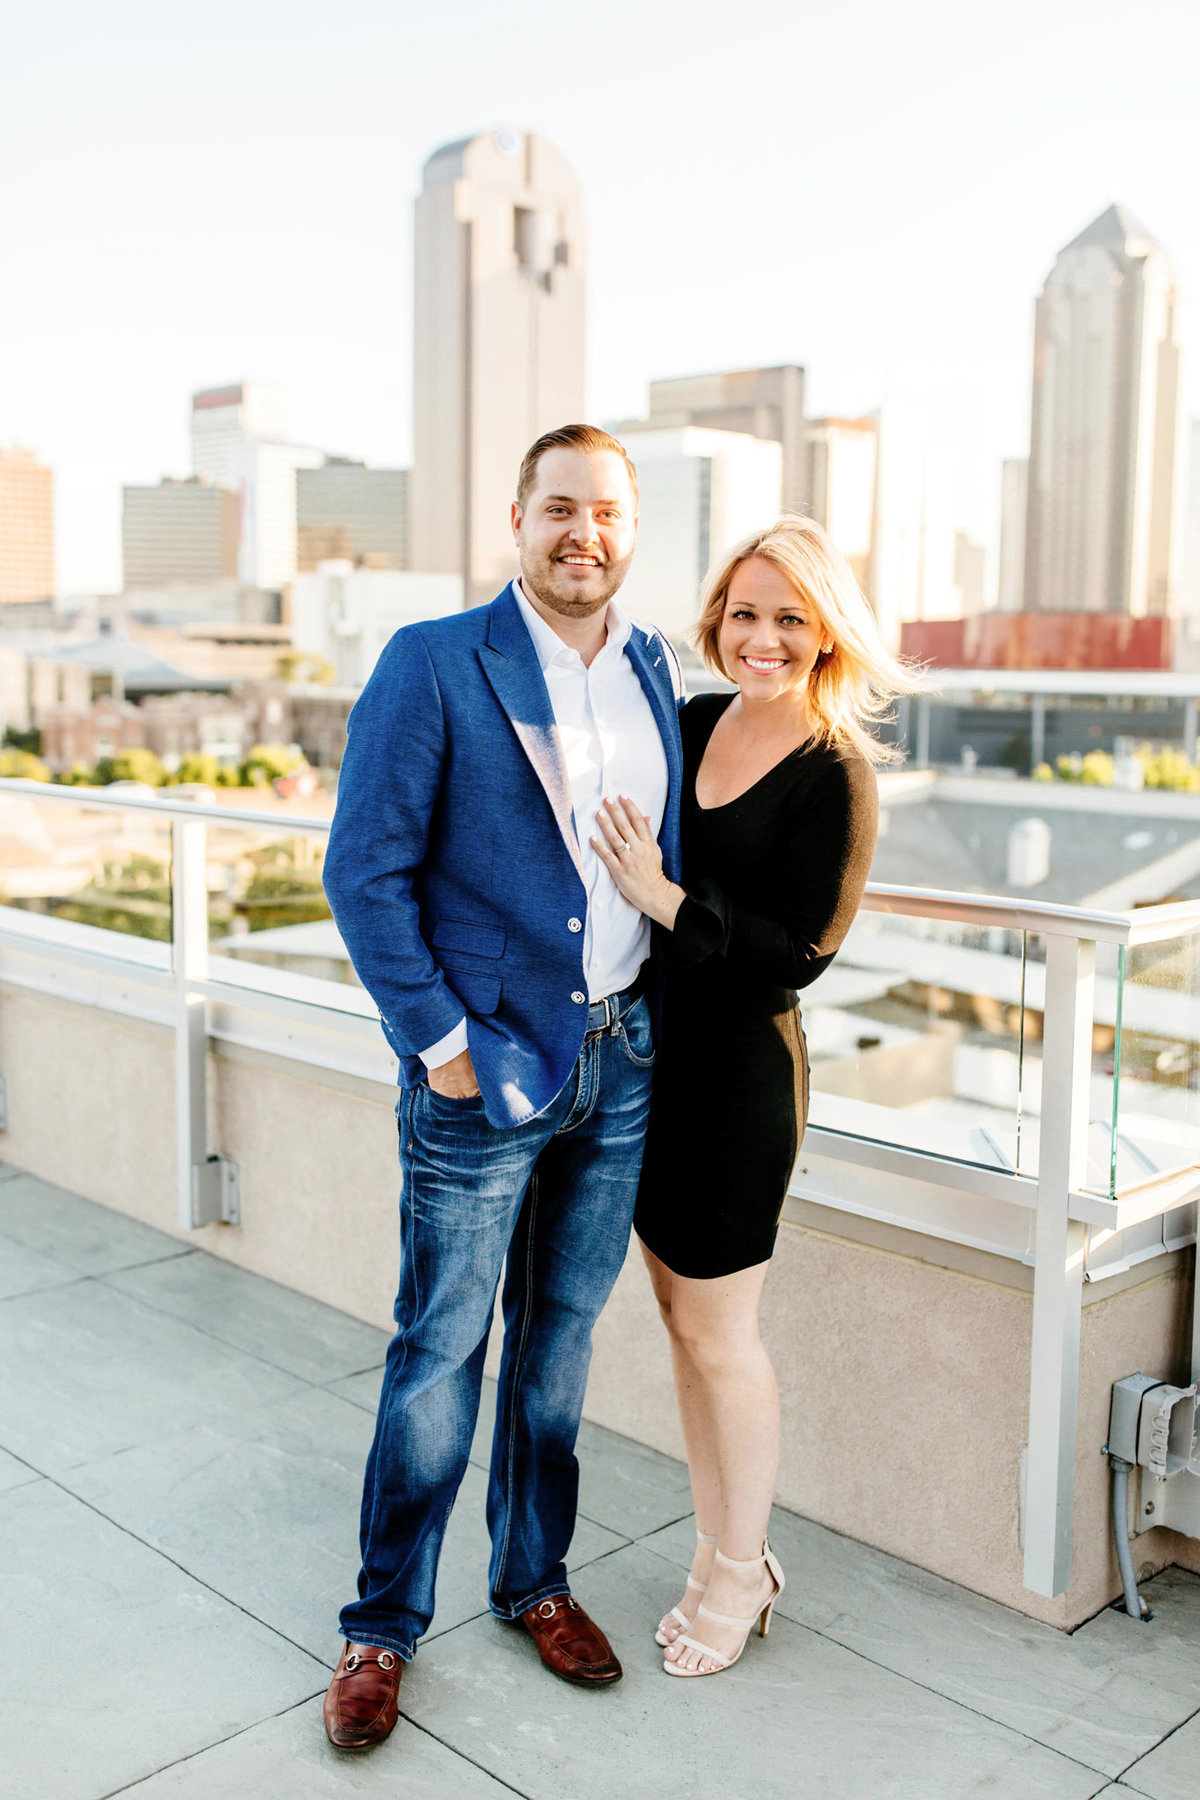 Eric & Megan - Downtown Dallas Rooftop Proposal & Engagement Session-59